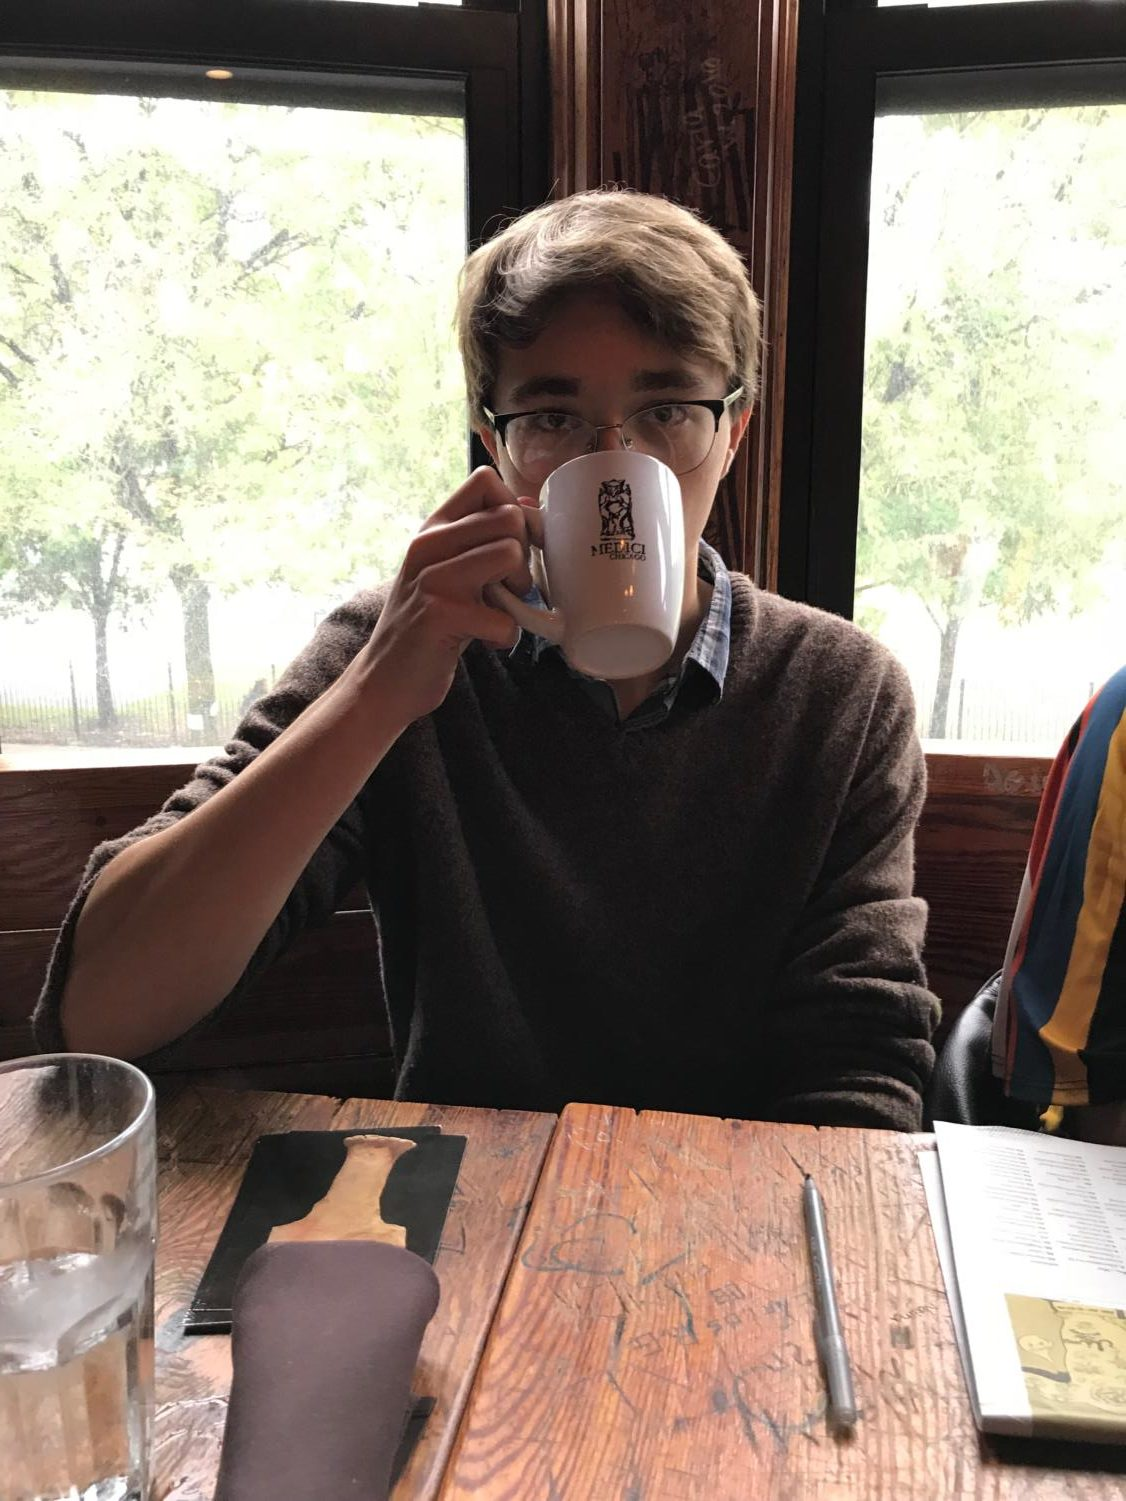 Coffee anyone? Omega editor Matt Troher enjoys a cup of his favorite beverage, coffee